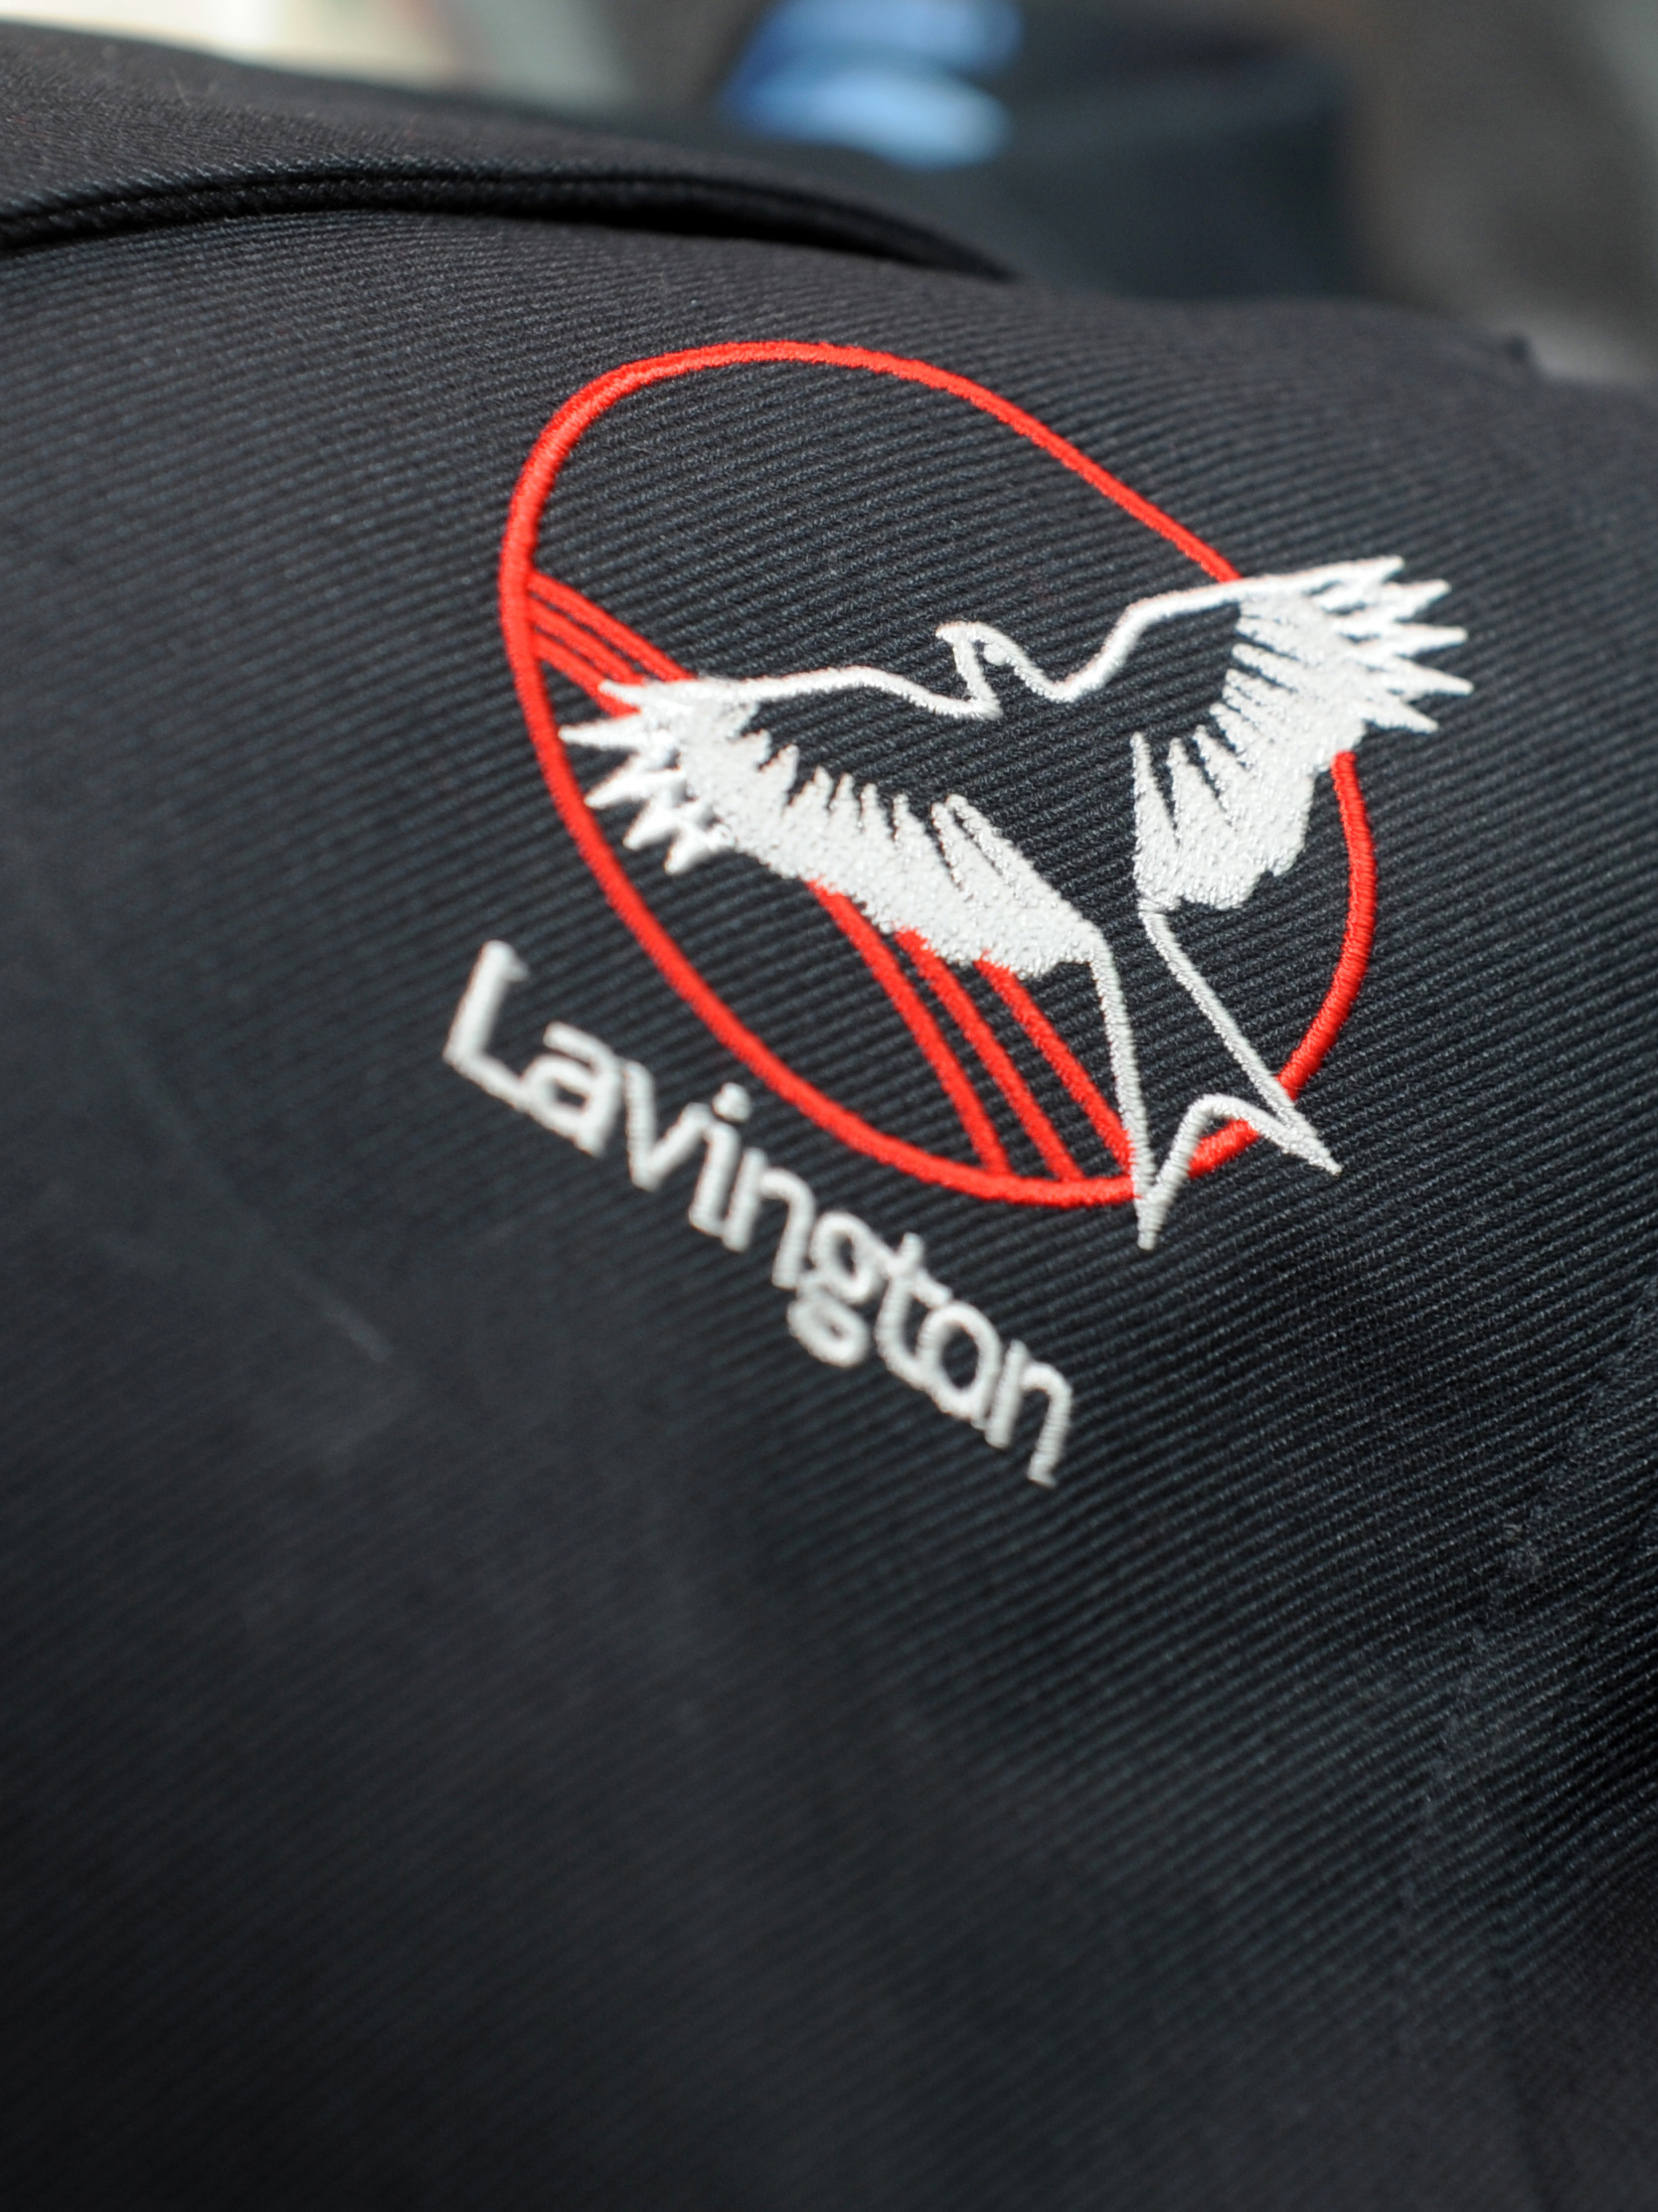 Lavington School defends its policy on bullying